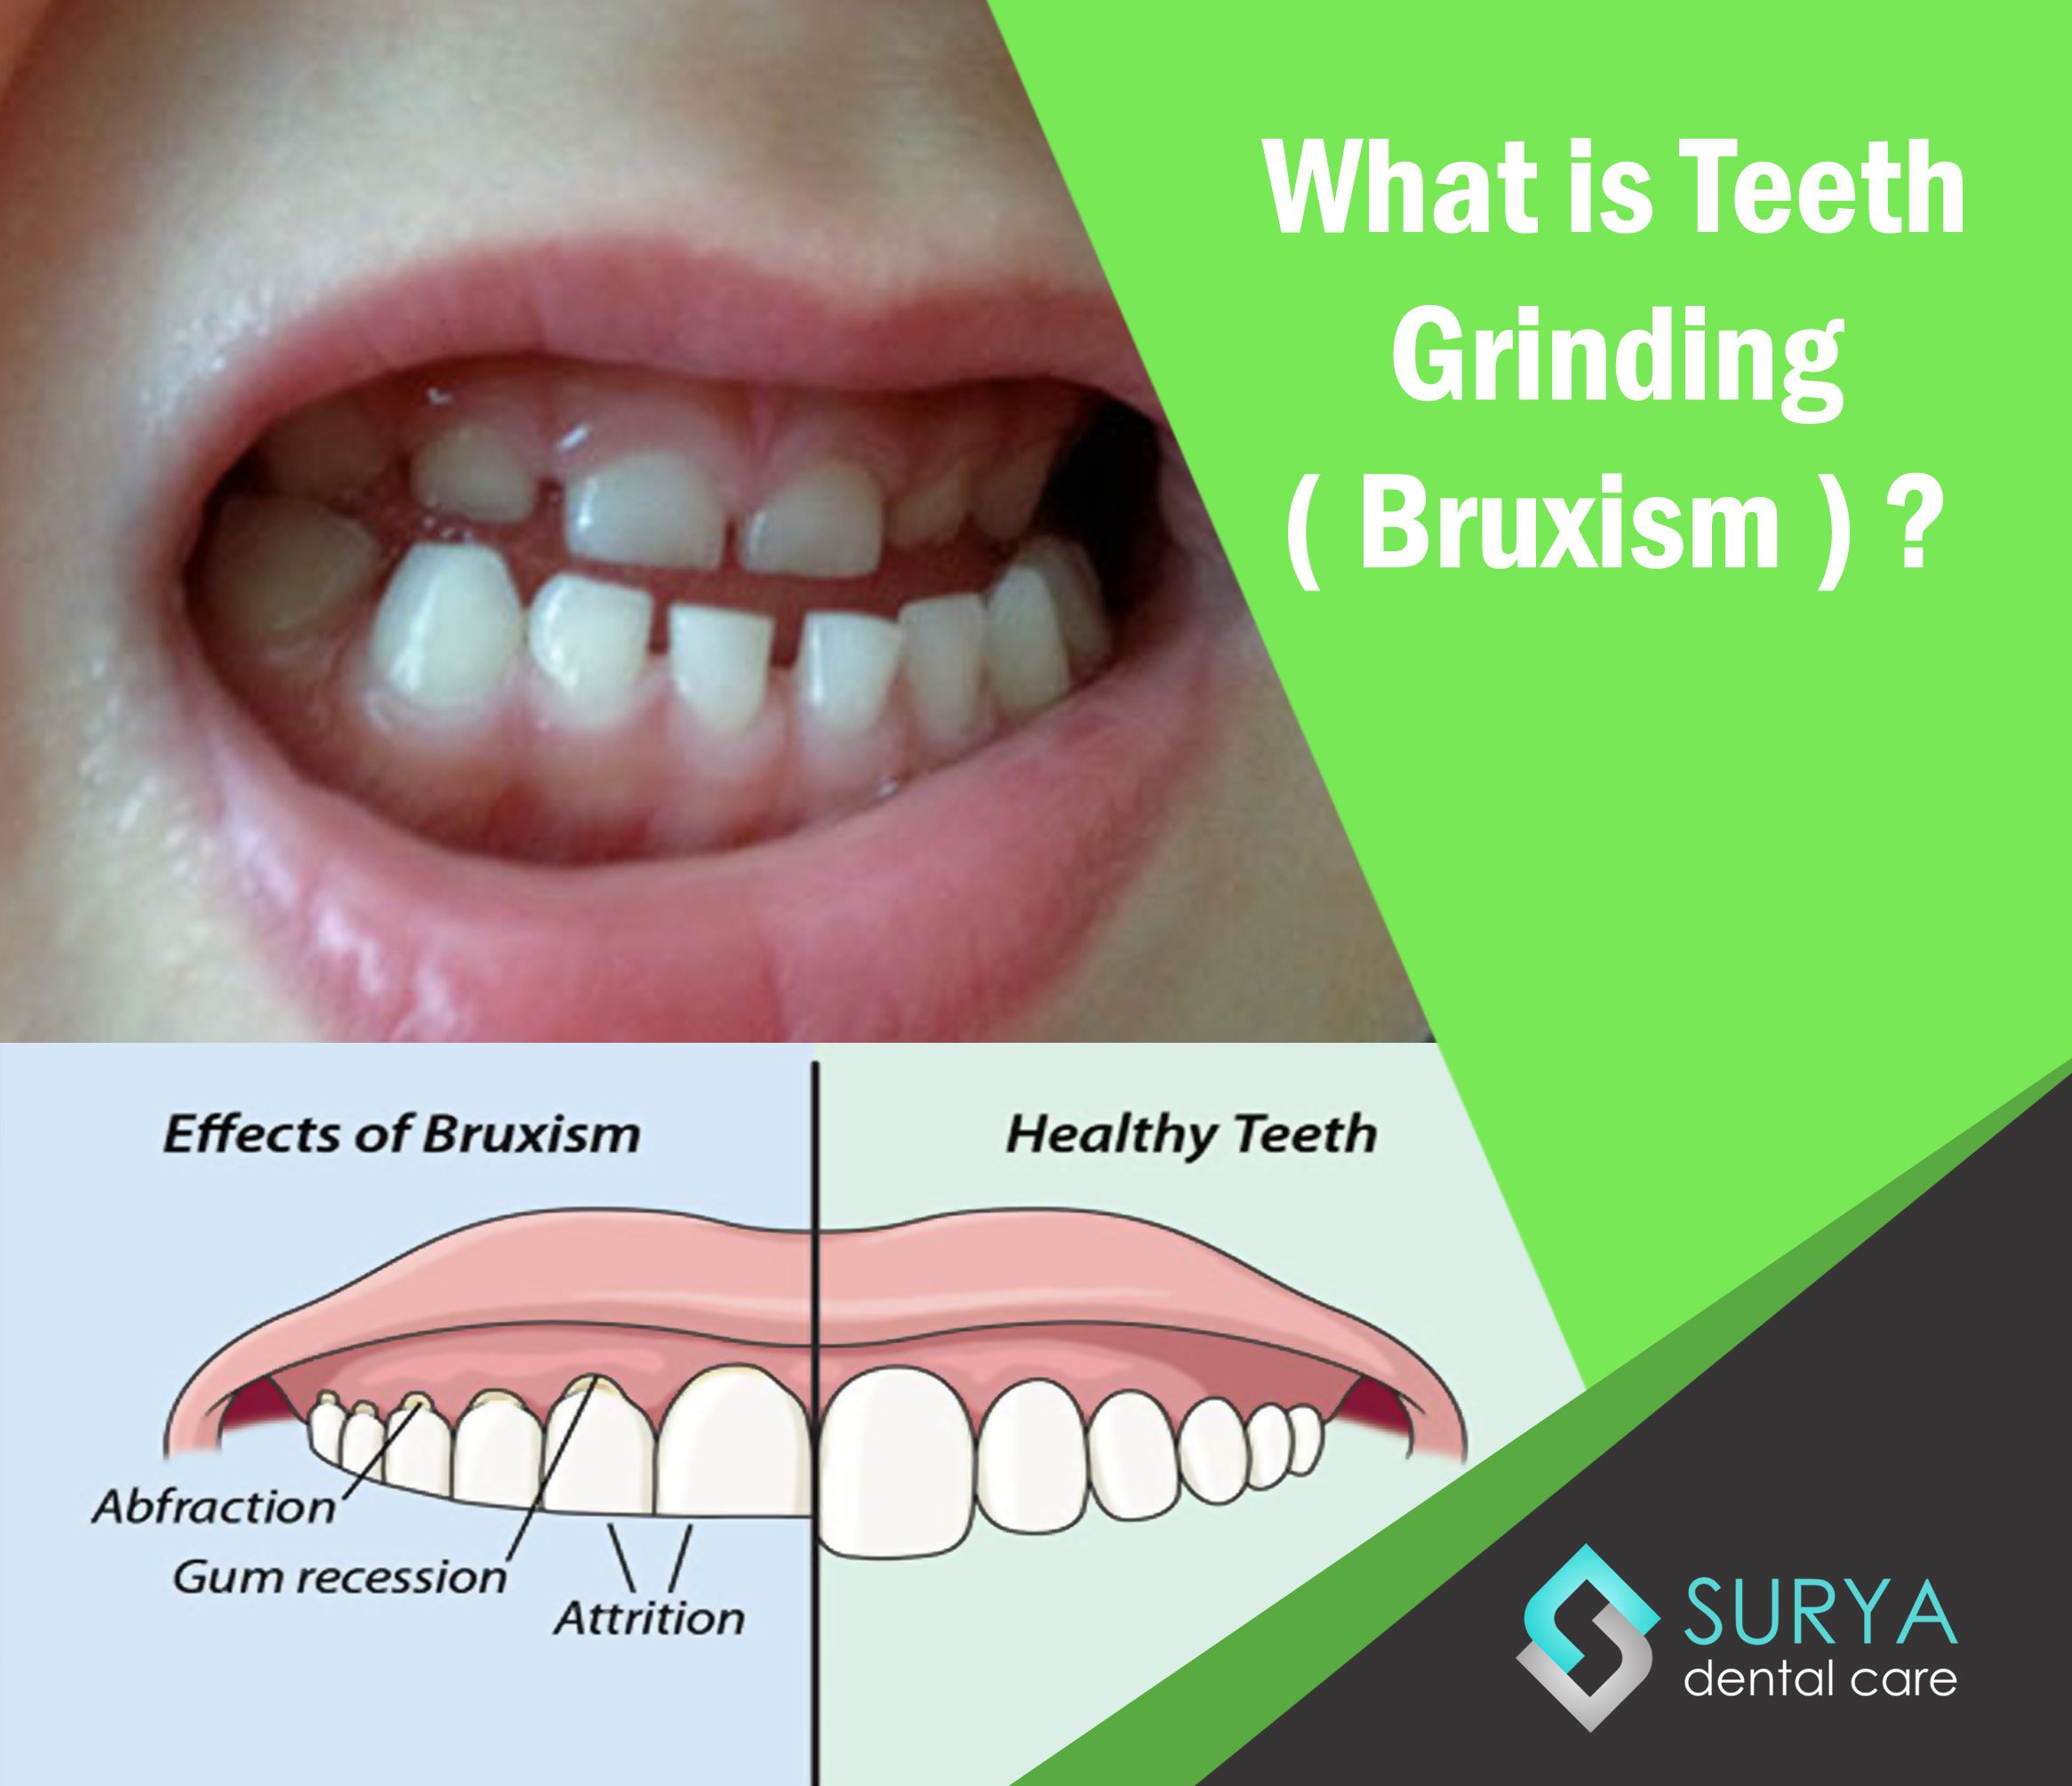 Bruxism The Poor Oral Habit Of Grinding And Clenching Teeth While